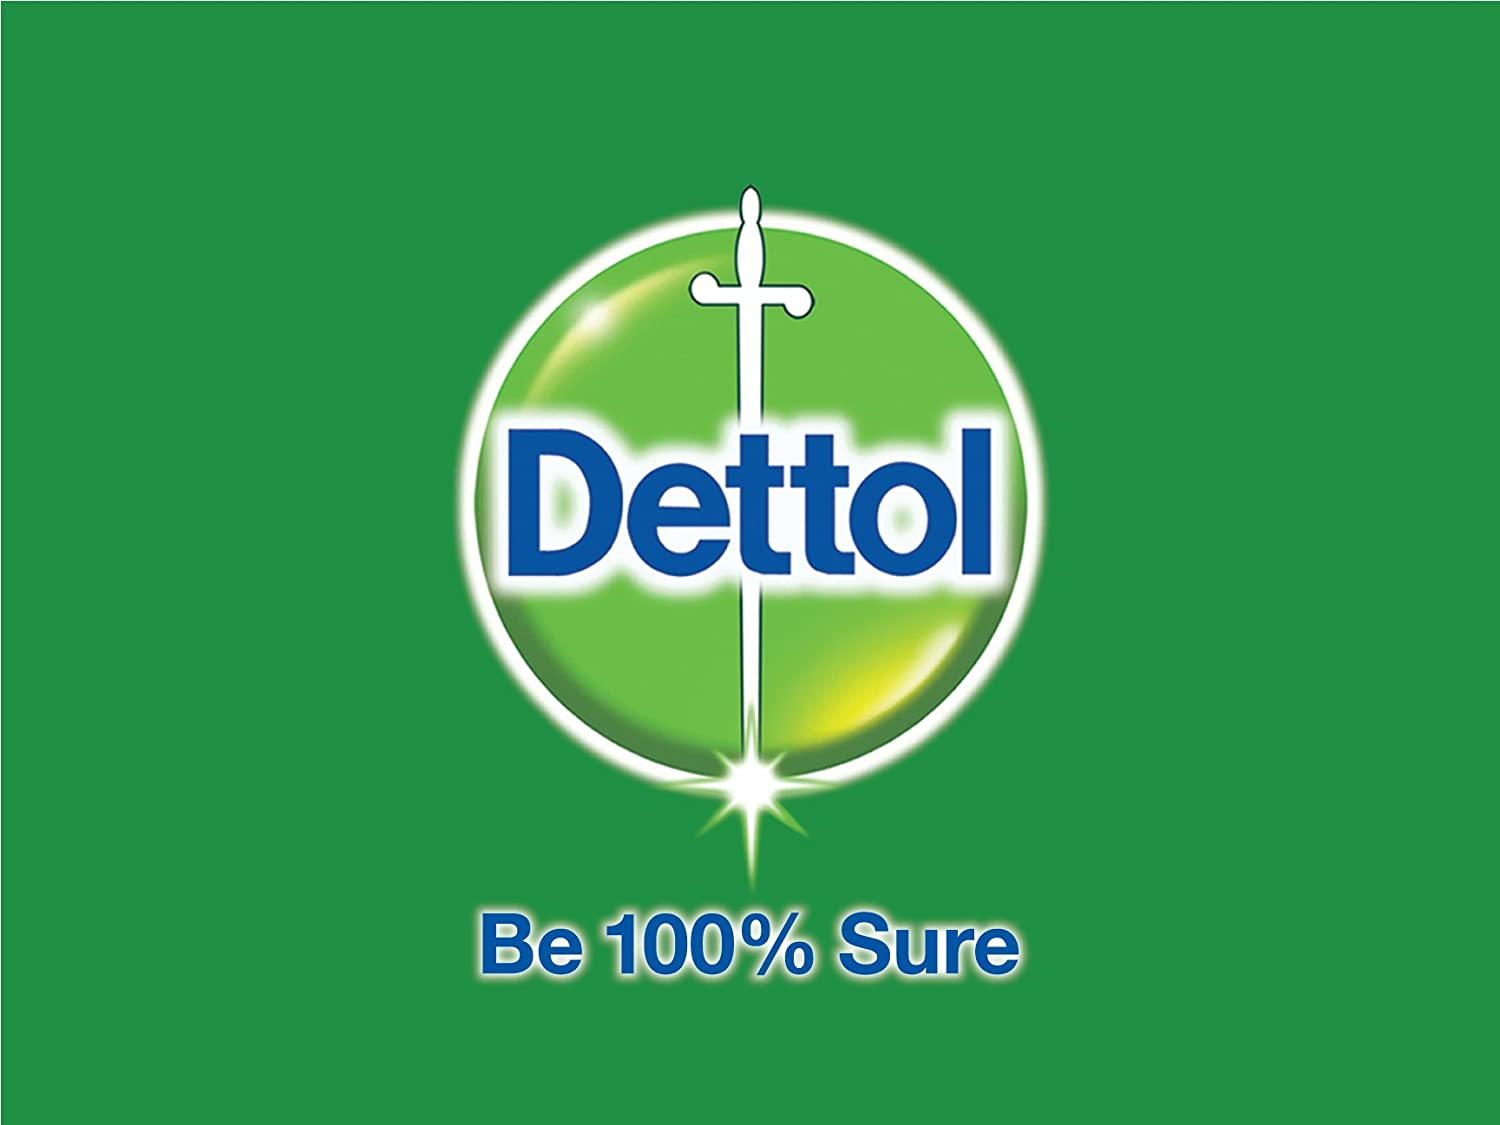 Dettol Liquid Hand Wash Formulated For Everyday Antiseptic 500 Ml 2 Pcs Flash Cleaning Use Original Beauty